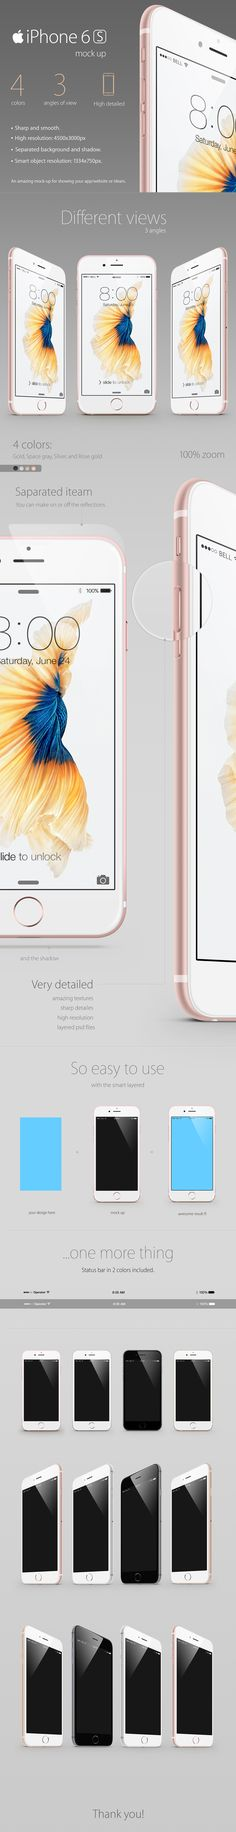 iPhone 6s Mock-up on Behance